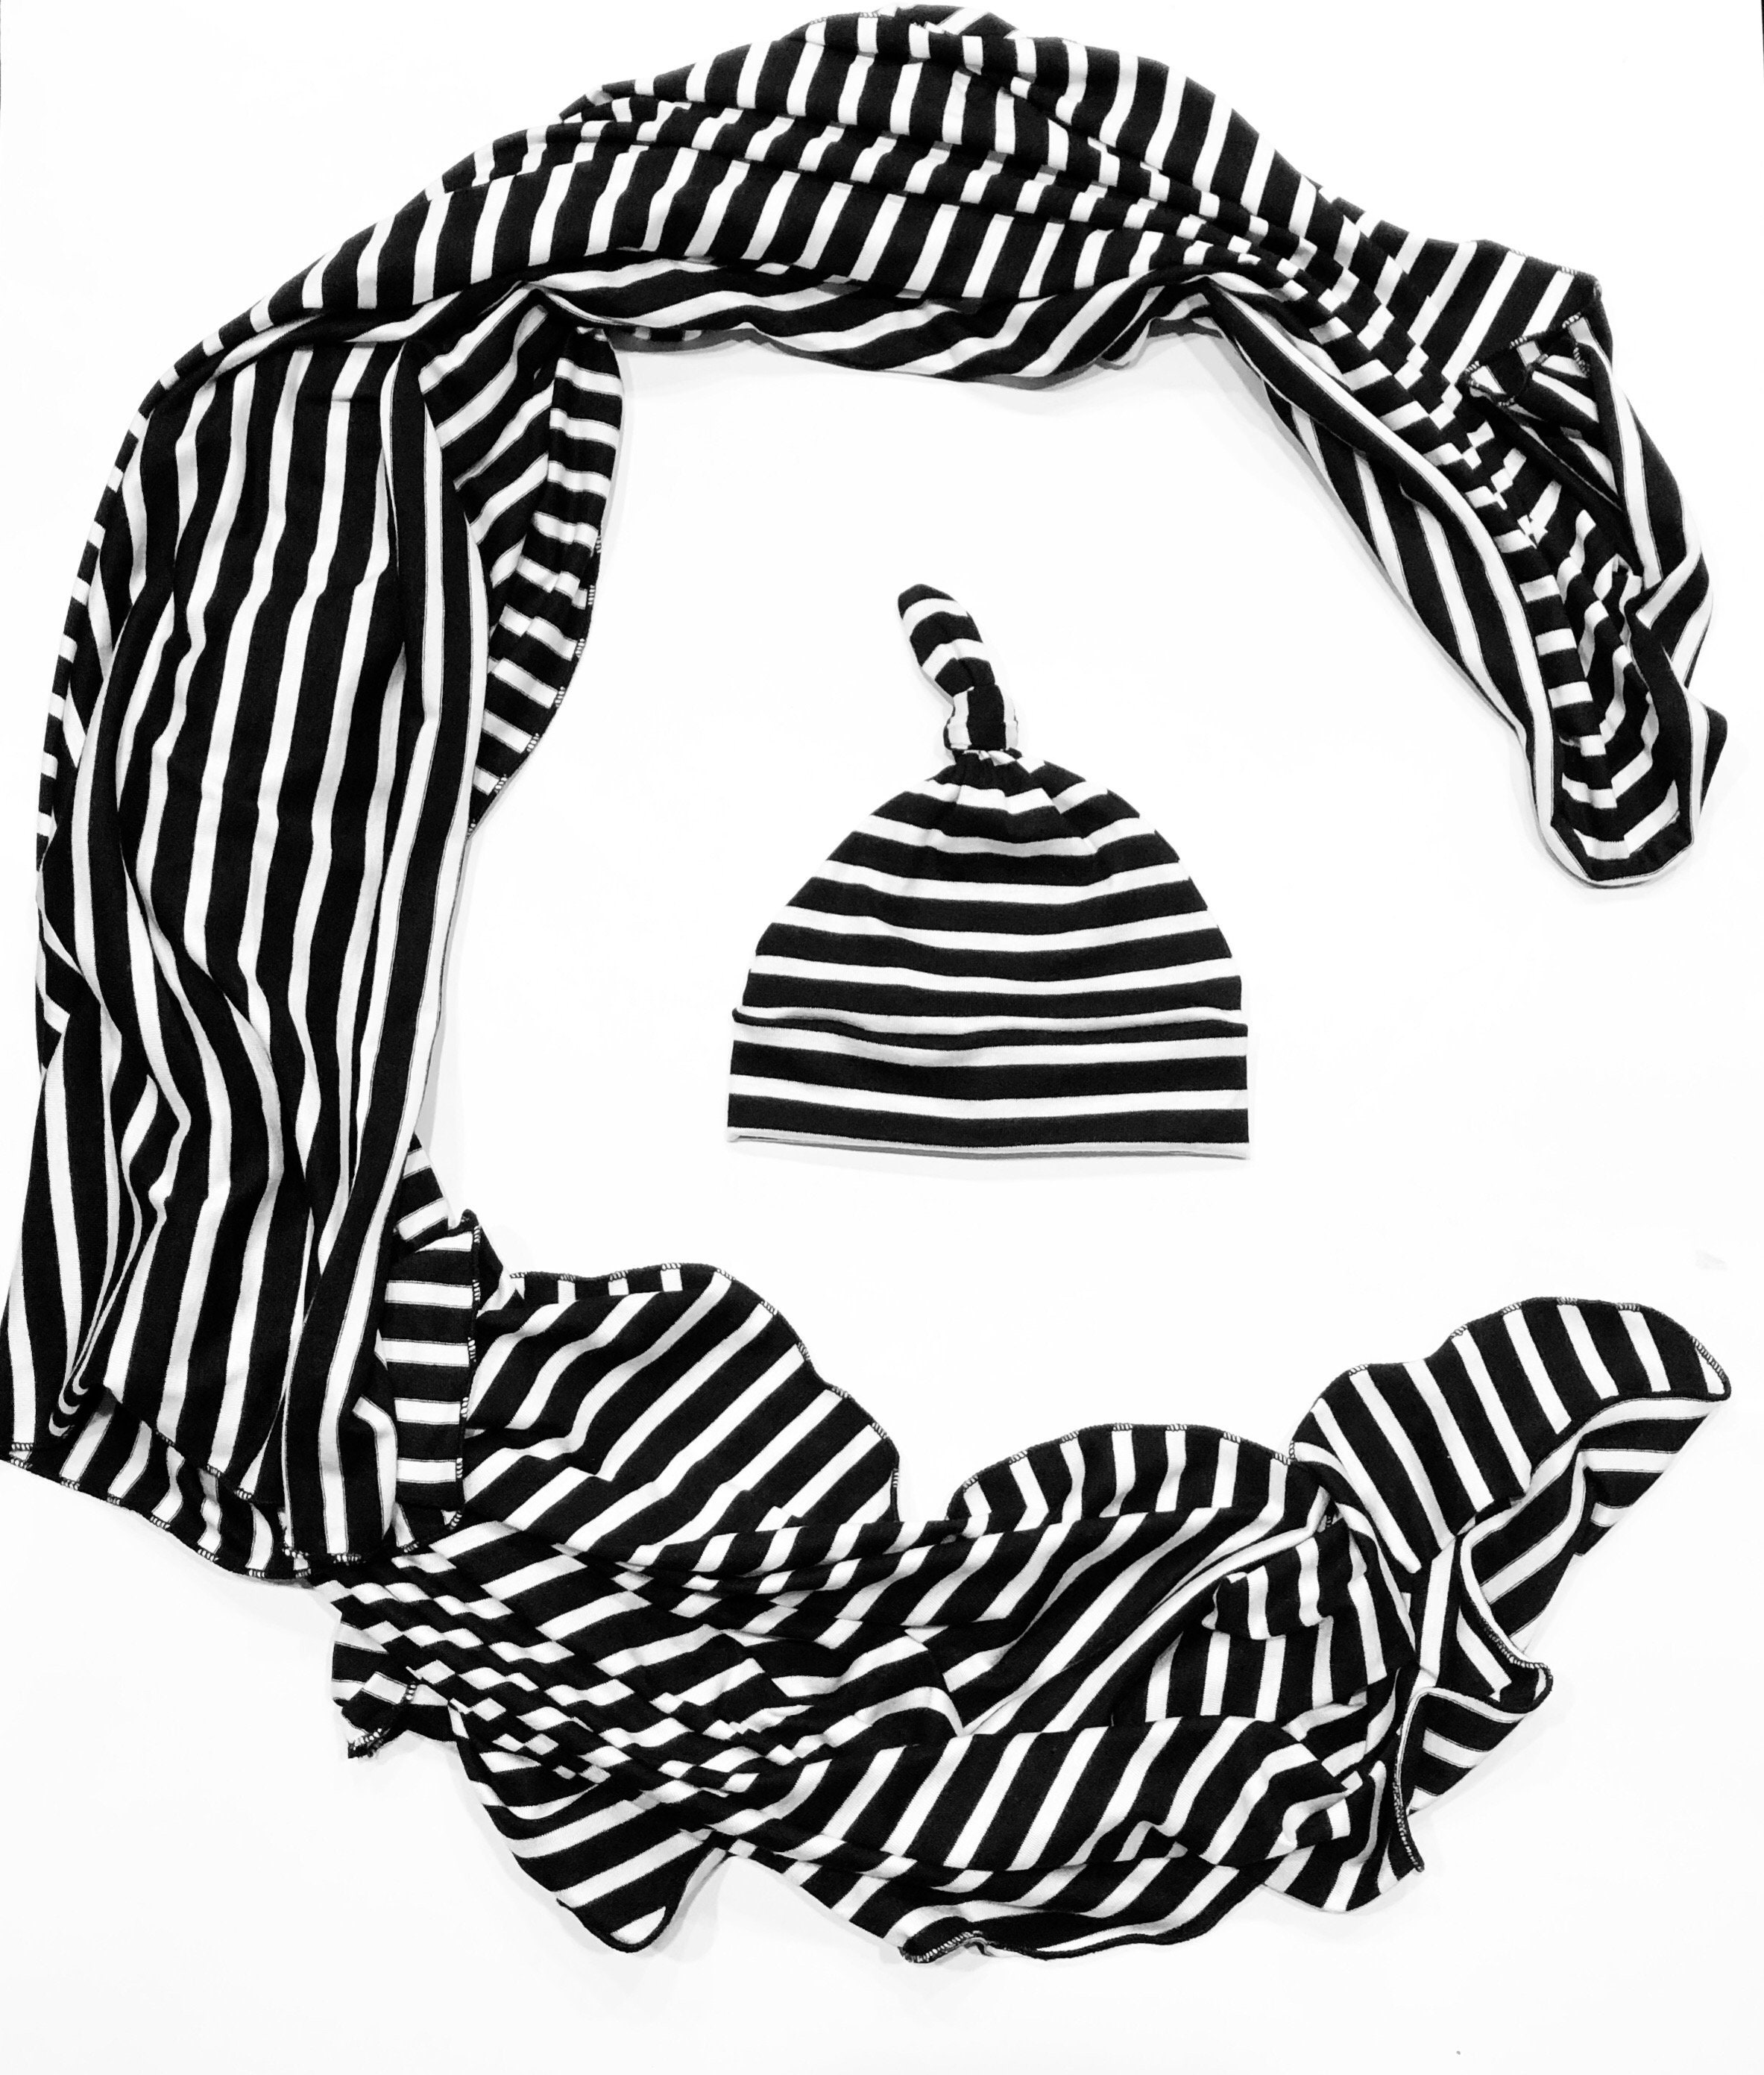 26640f625d01a Black / White Stripe Baby Swaddle and Hat Set - Baby Gift - Newborn Swaddle  and Knotted Hat - Newborn Gift - Baby Blanket